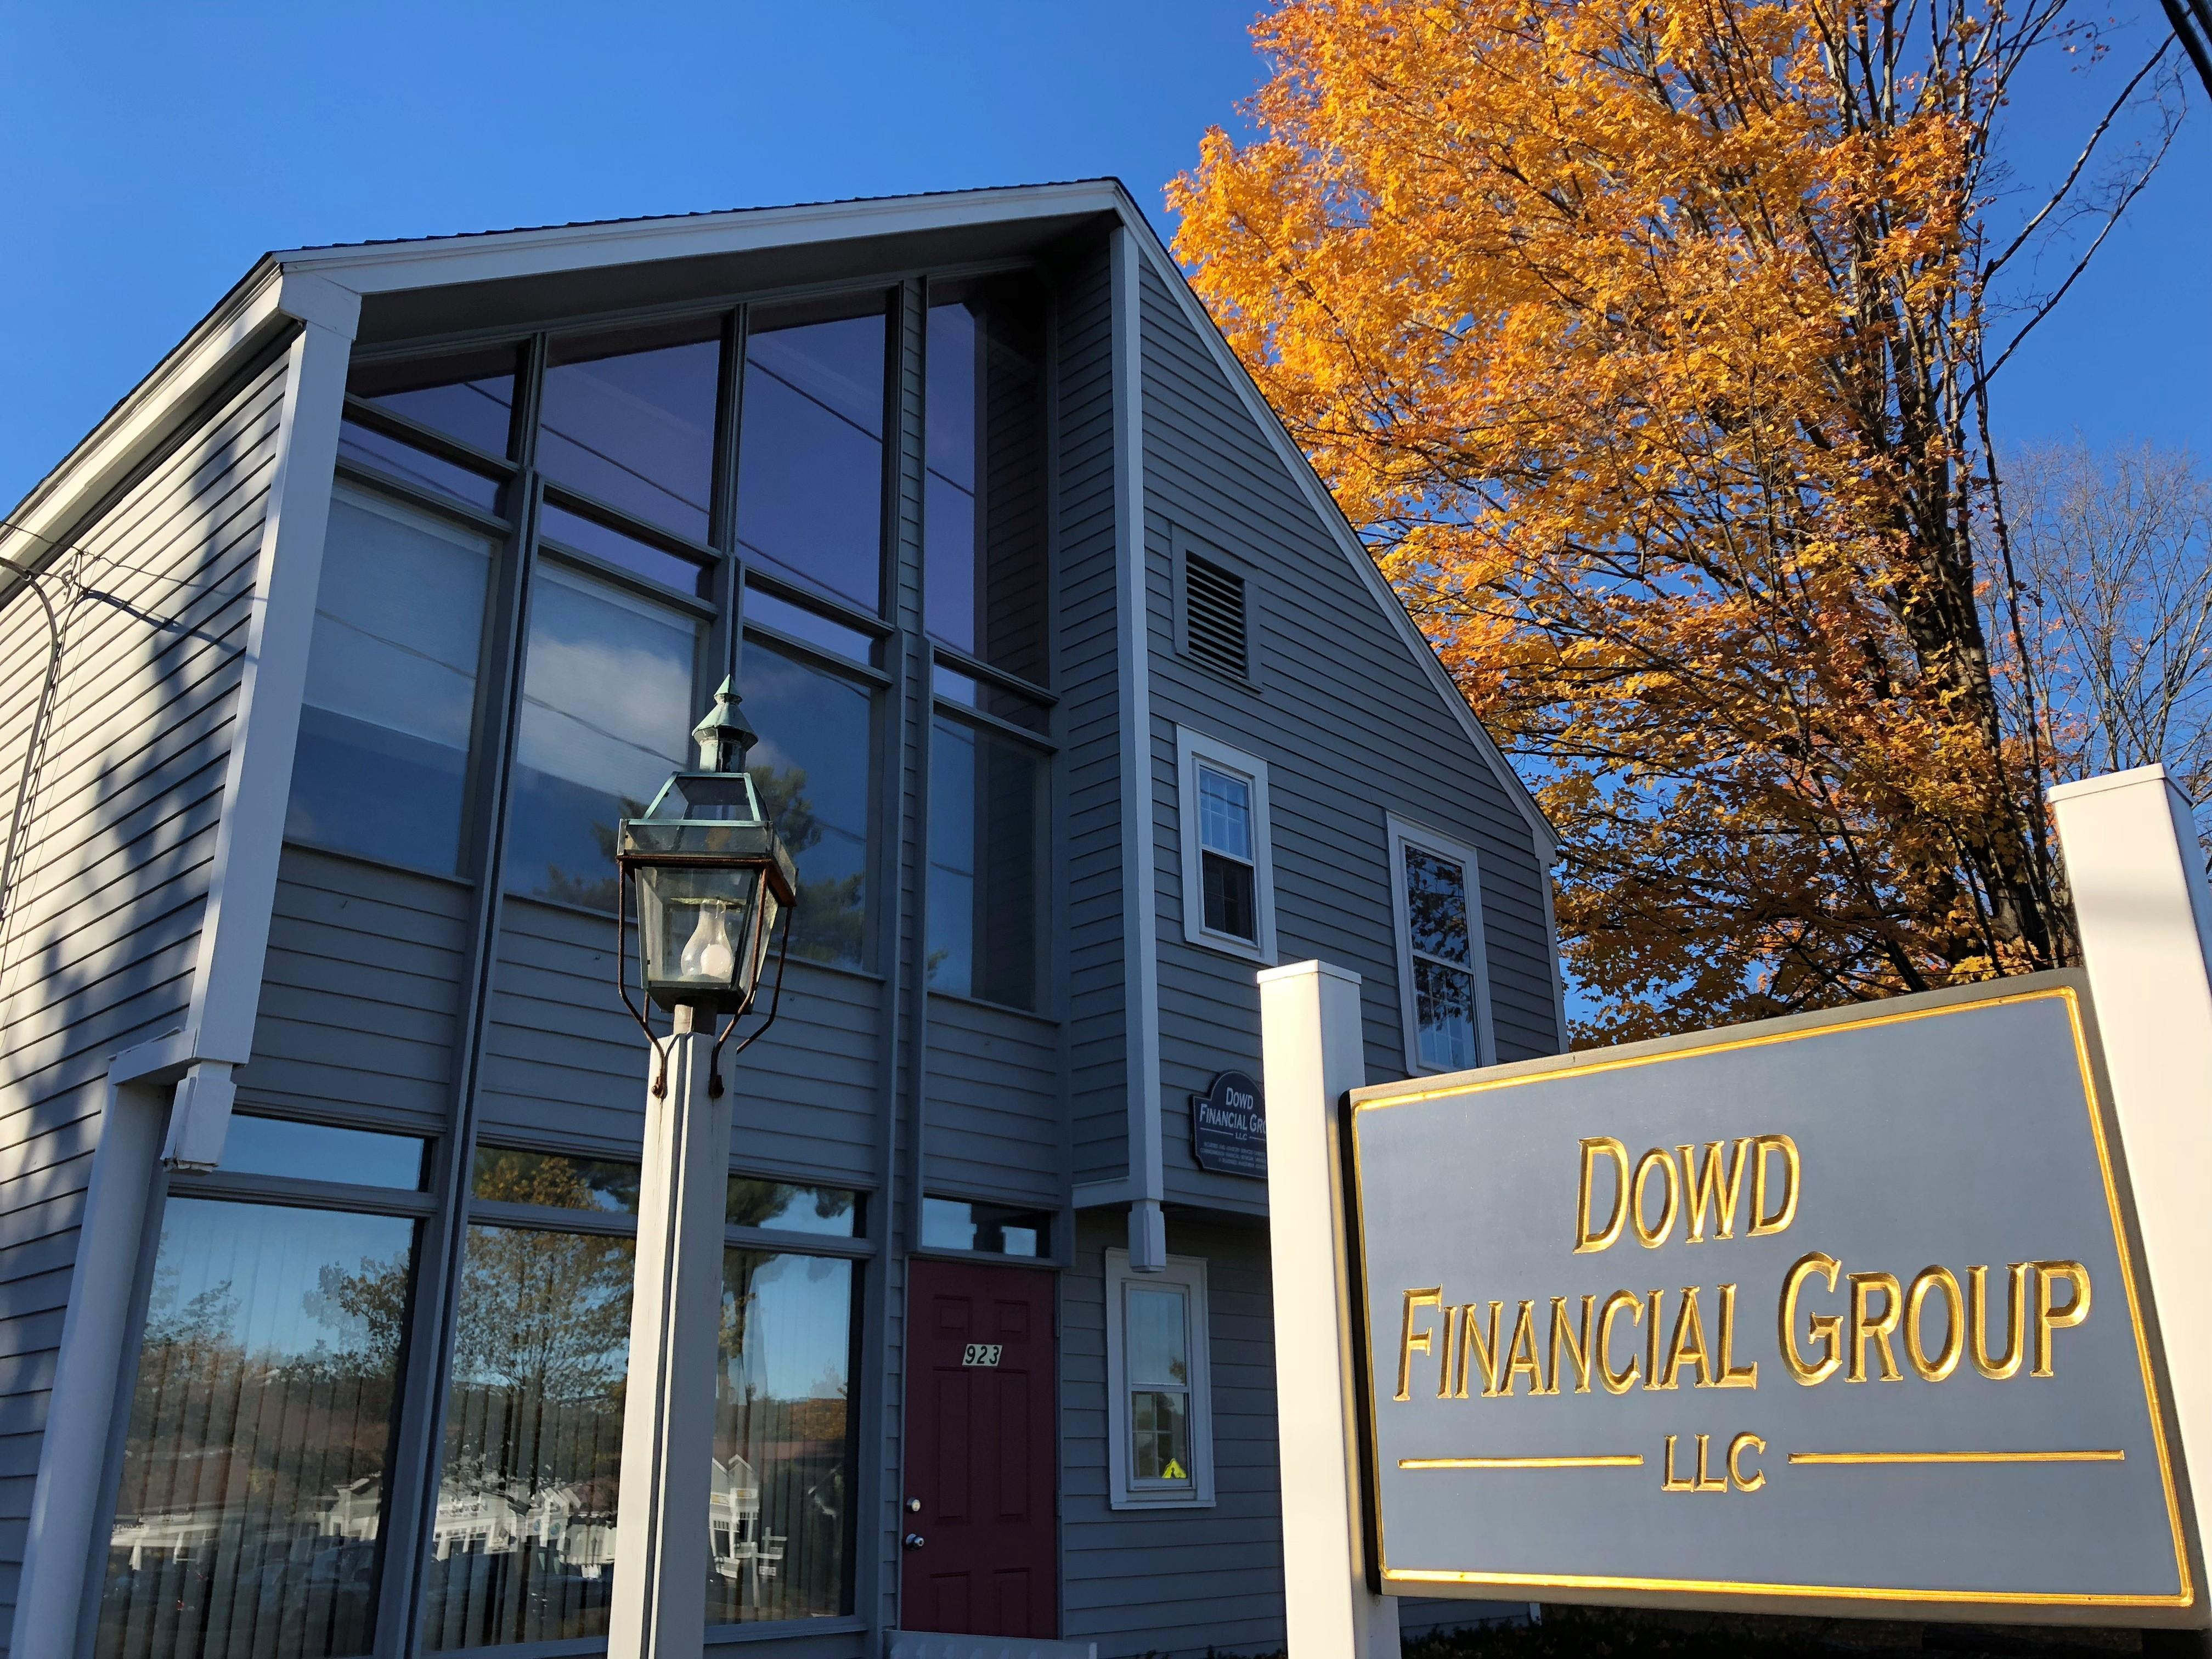 Dowd Financial Group LLC Simsbury CT office